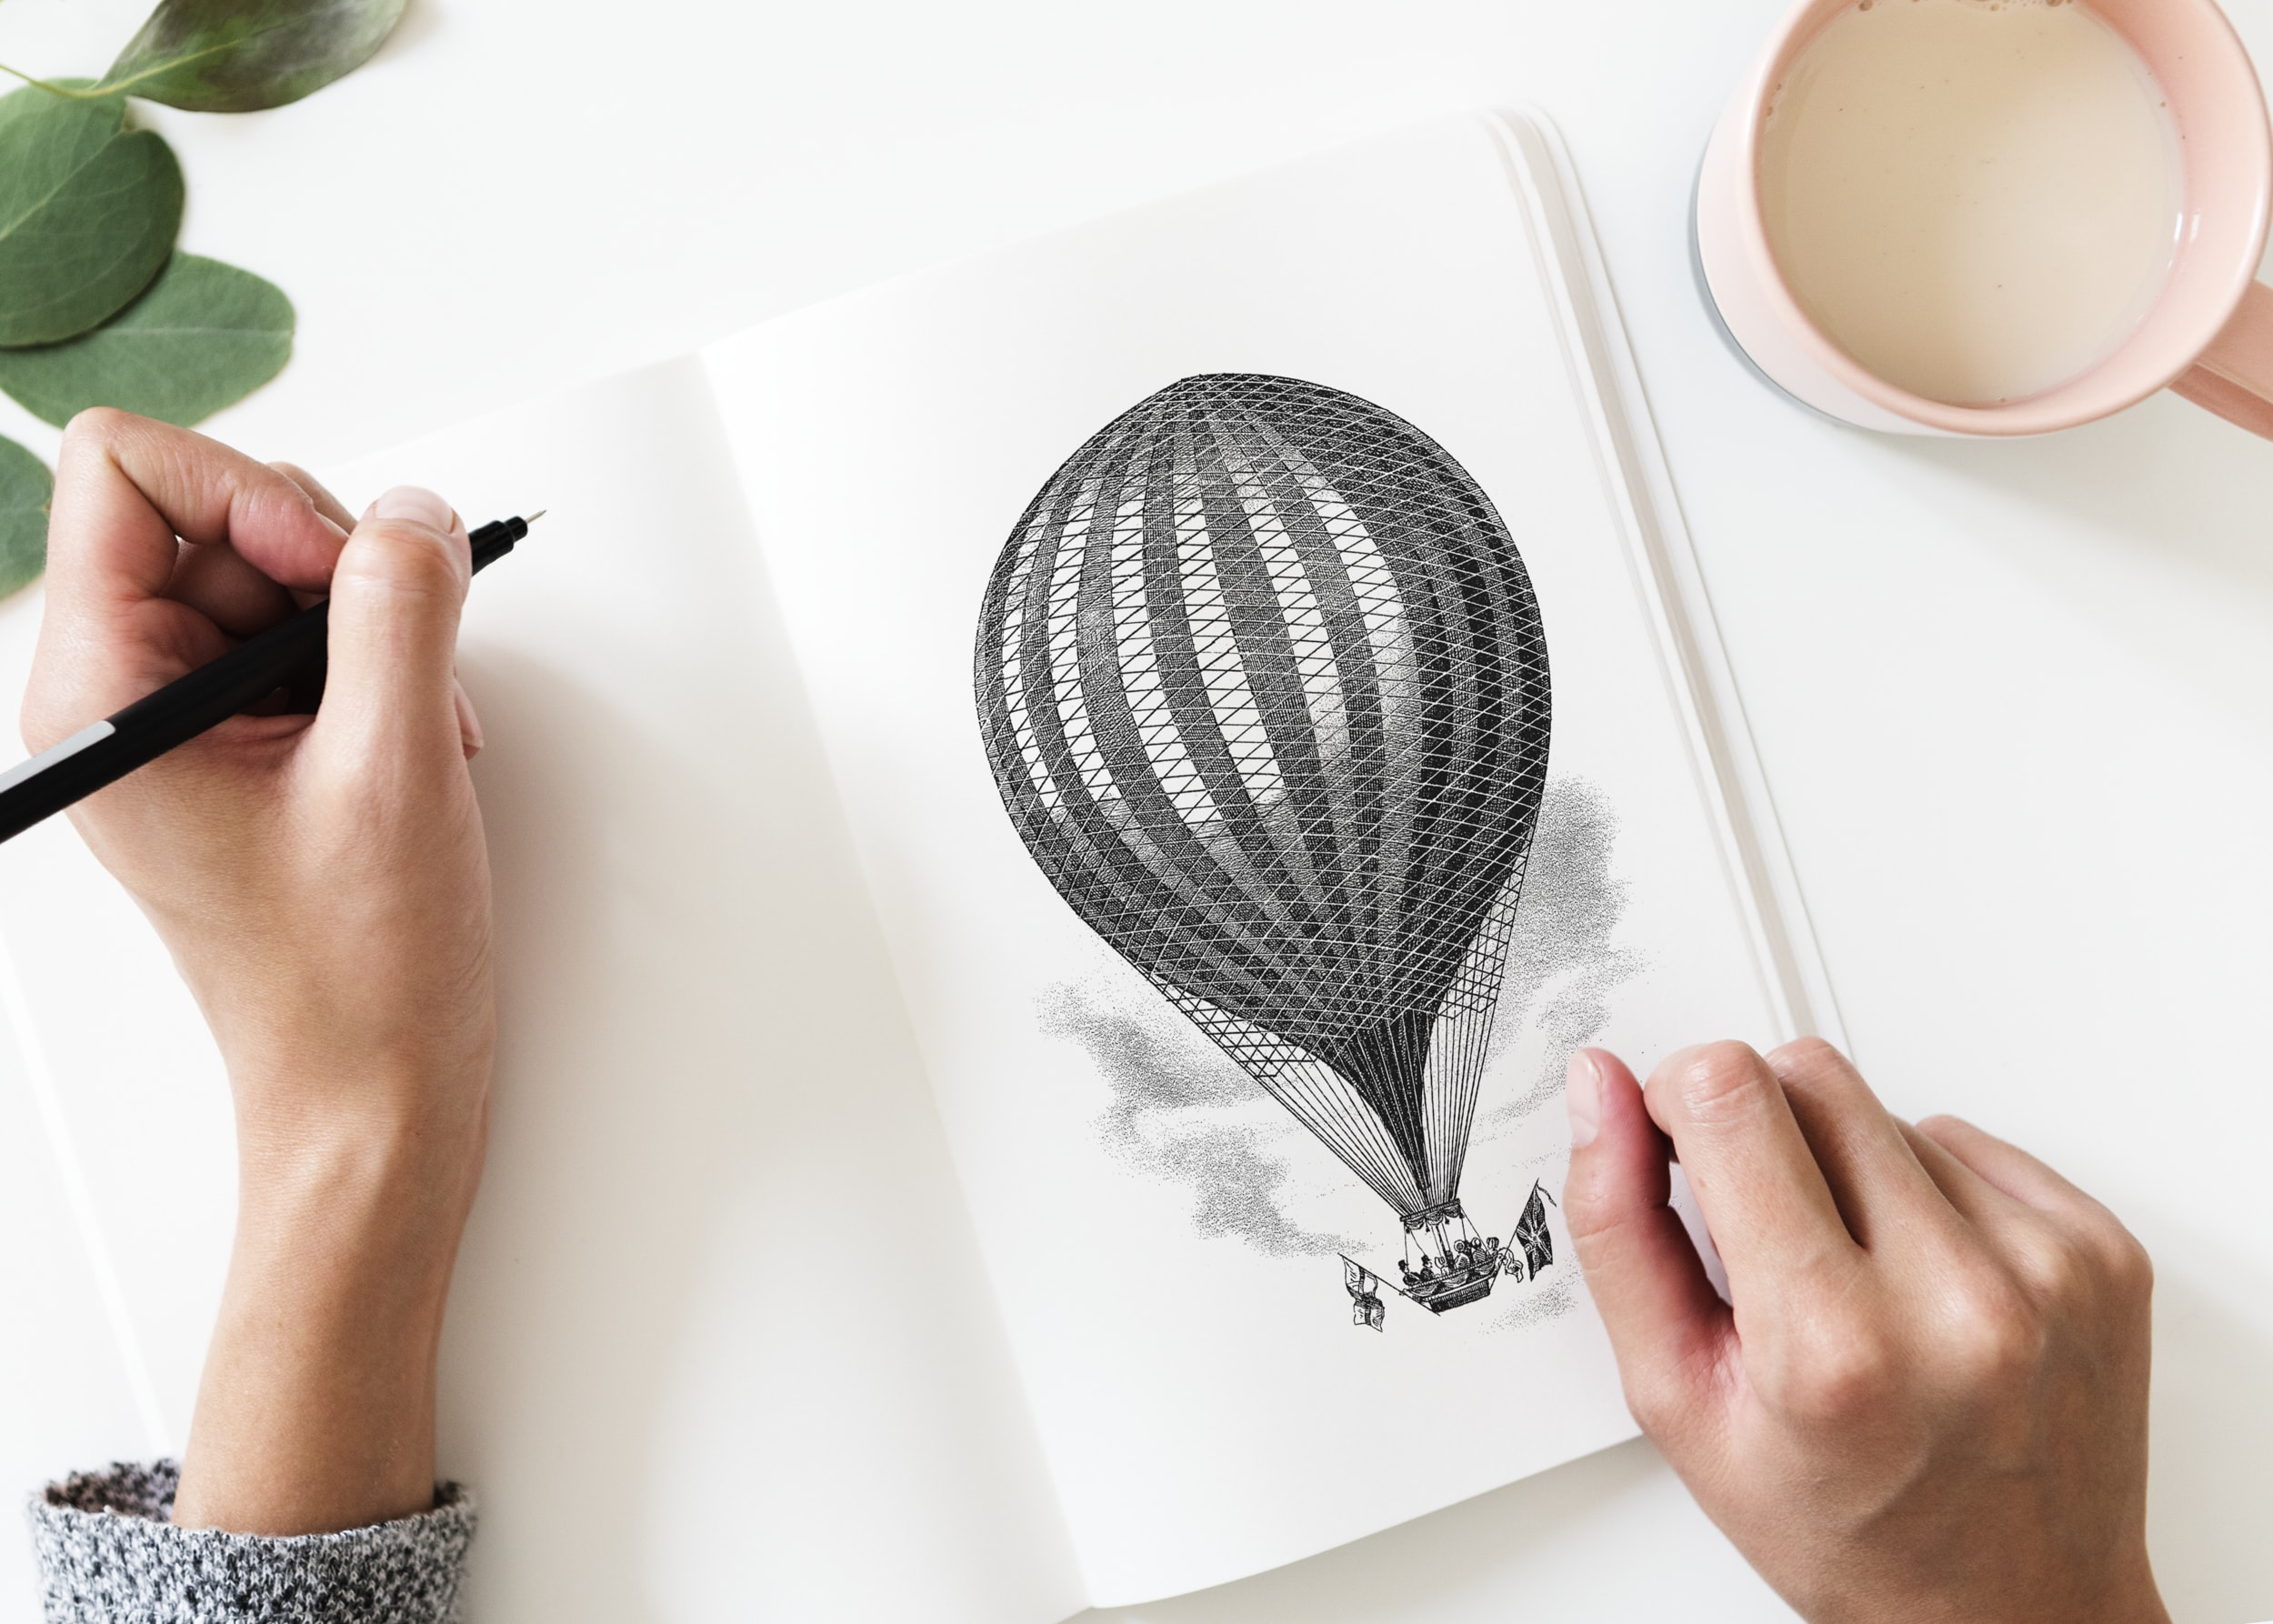 flay-lay photography of person sketching hot air balloon